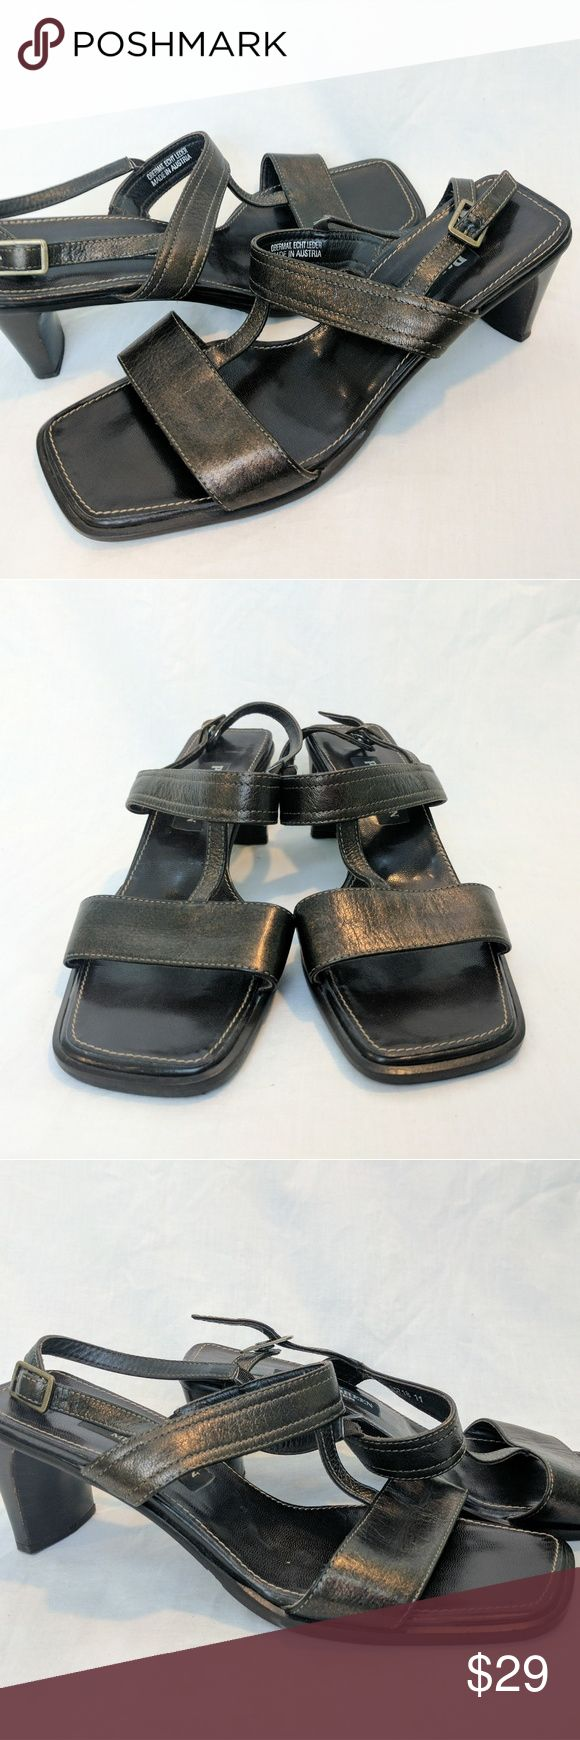 """Paul Green Munchen metallic brown sandals These pre-loved Paul Green sandals show wear consistent with use, creasing, discoloration, and scuffs. They are in goo used condition. The UK size 5 is approximately a US size 7.5.    Appx 2"""" blocky heel  Made in Austria  Slingback with buckle  Metallic dark brown leather upper  Synthetic sole Paul Green Shoes Heels"""